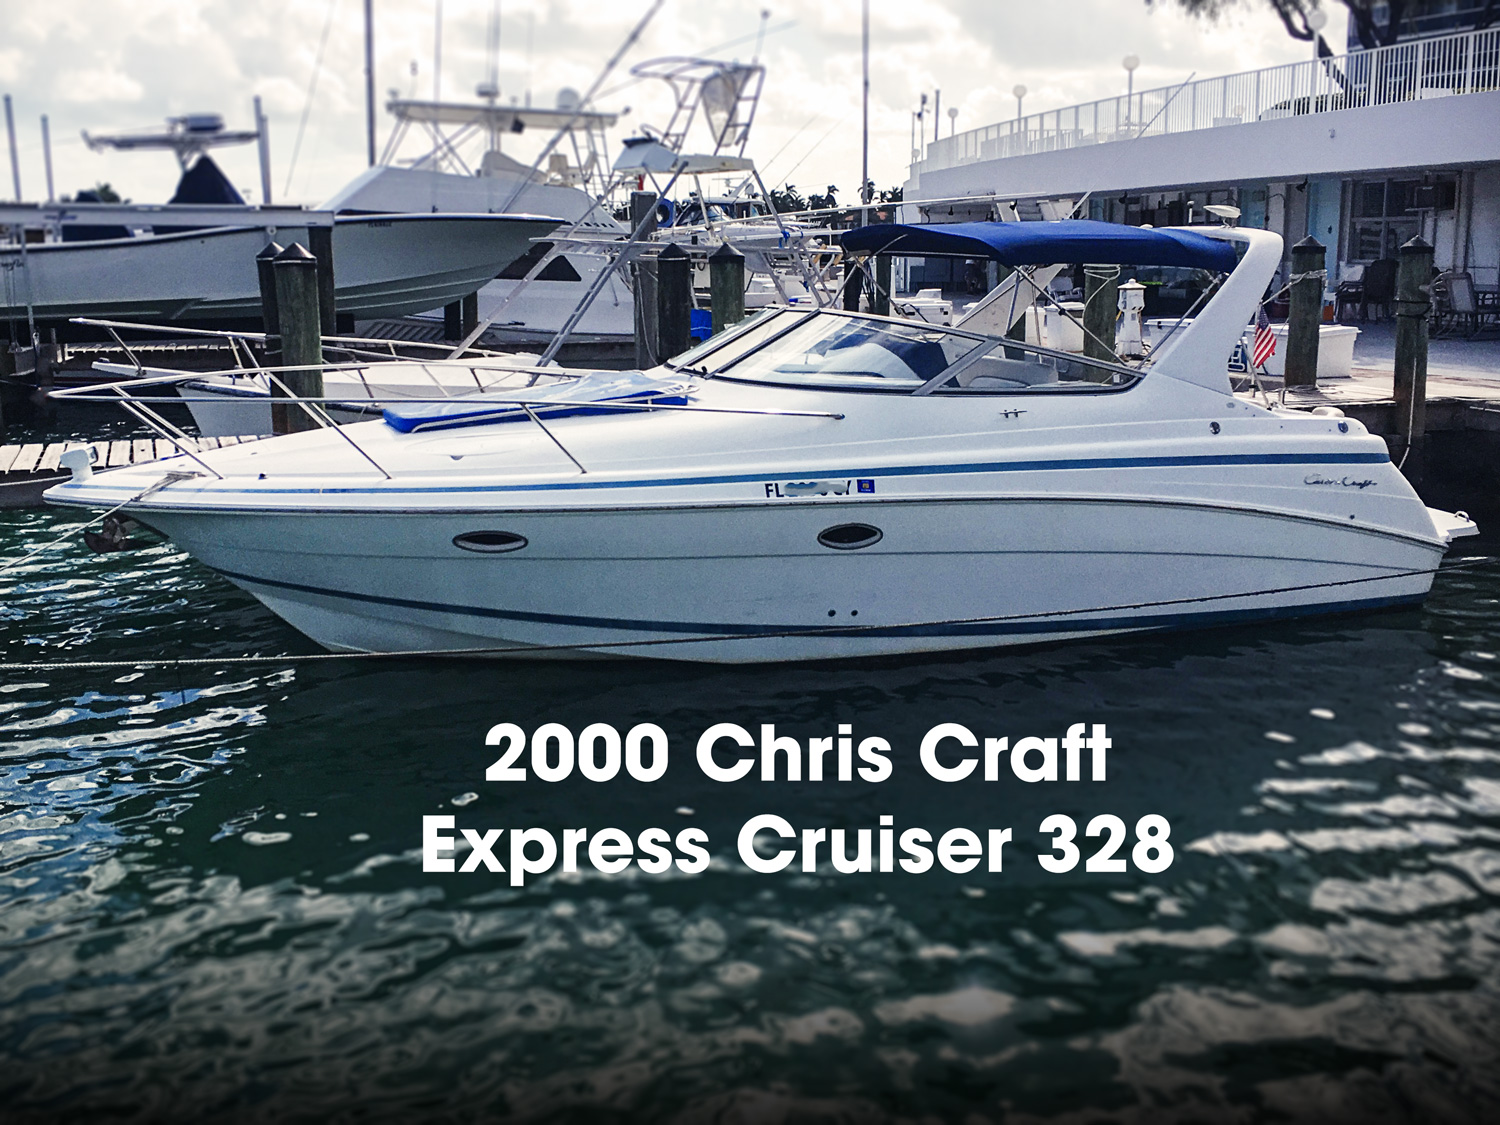 chris craft 328 express cruiser boats for sale